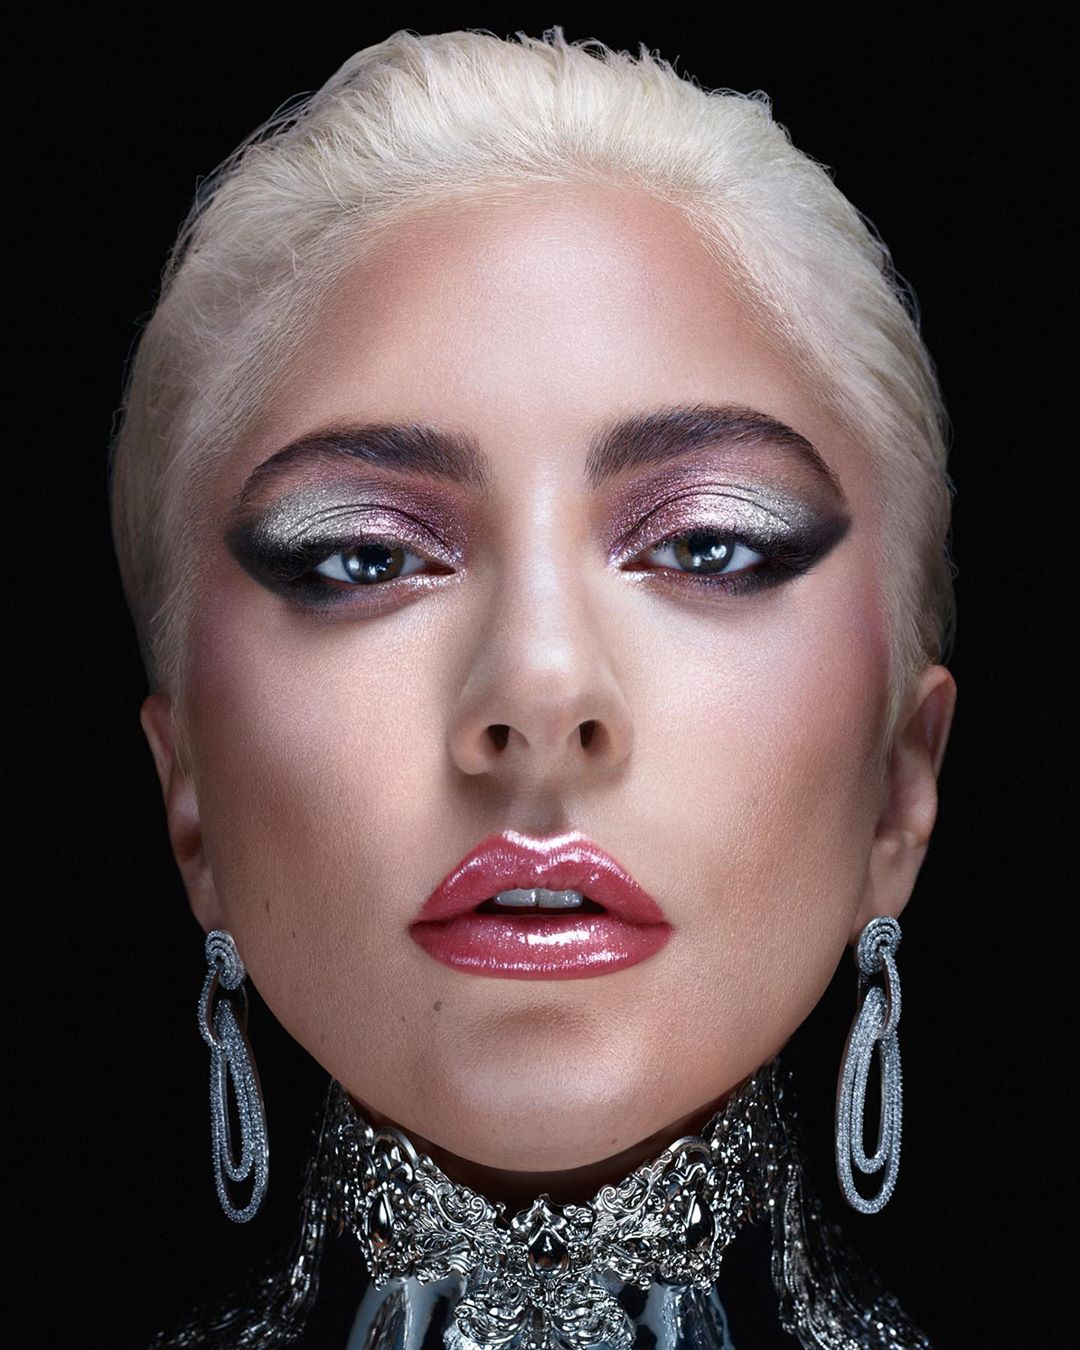 LADY GAGA'S NEW BEAUTY BRAND: HAUS LABORATORIES, LAUNCHING ON AMAZON PRIME DAY